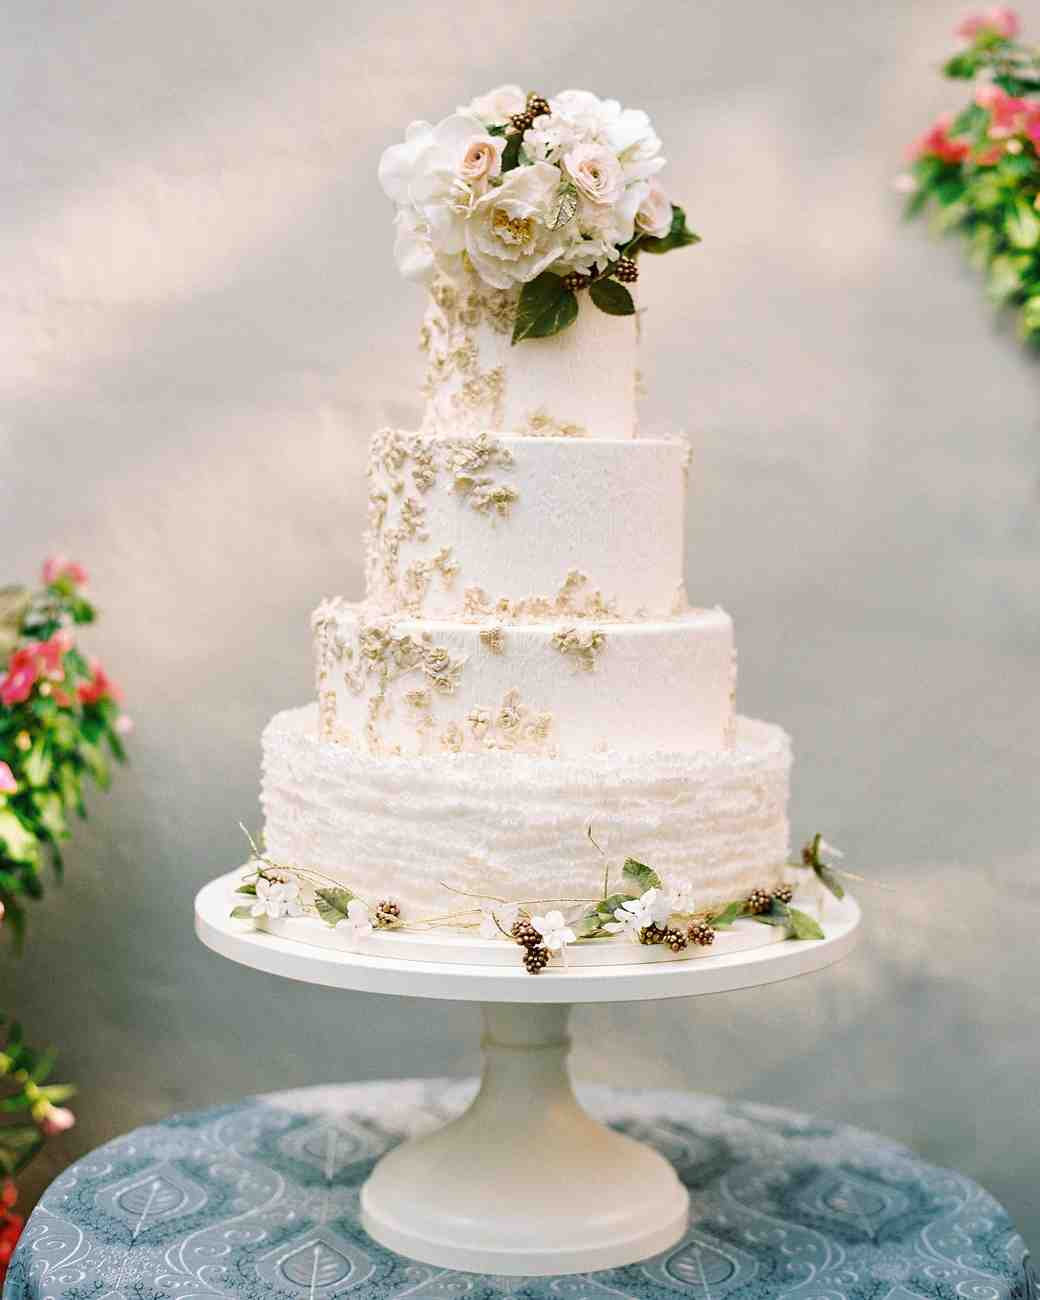 50 Beautiful Wedding Cakes That Are (Almost!) Too Pretty